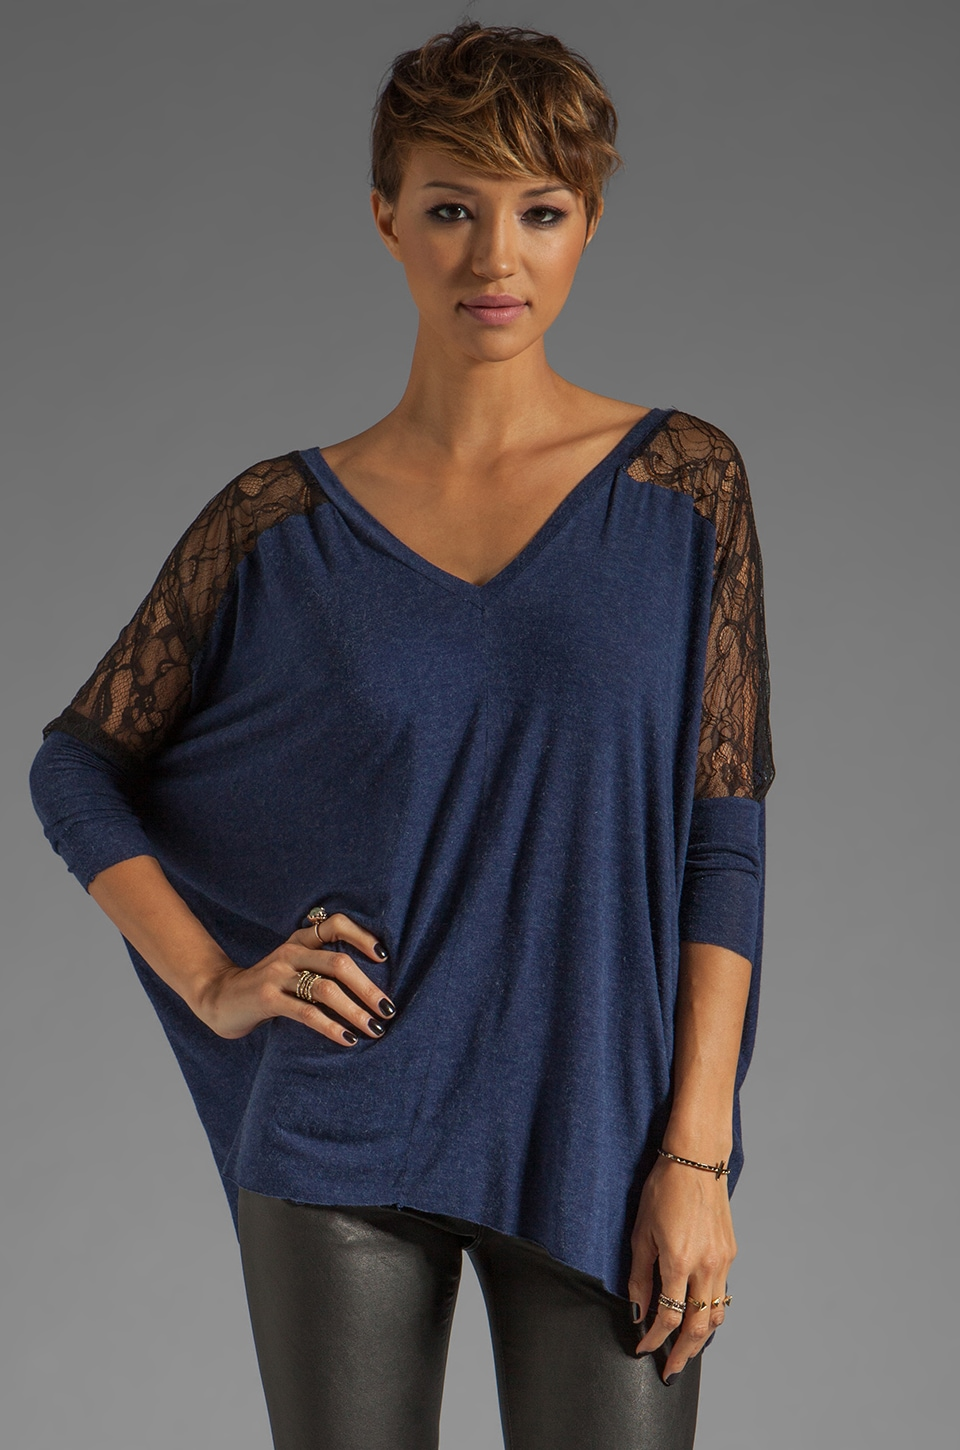 dolan Long Sleeve Oversized Tee with Lace in Goodnight